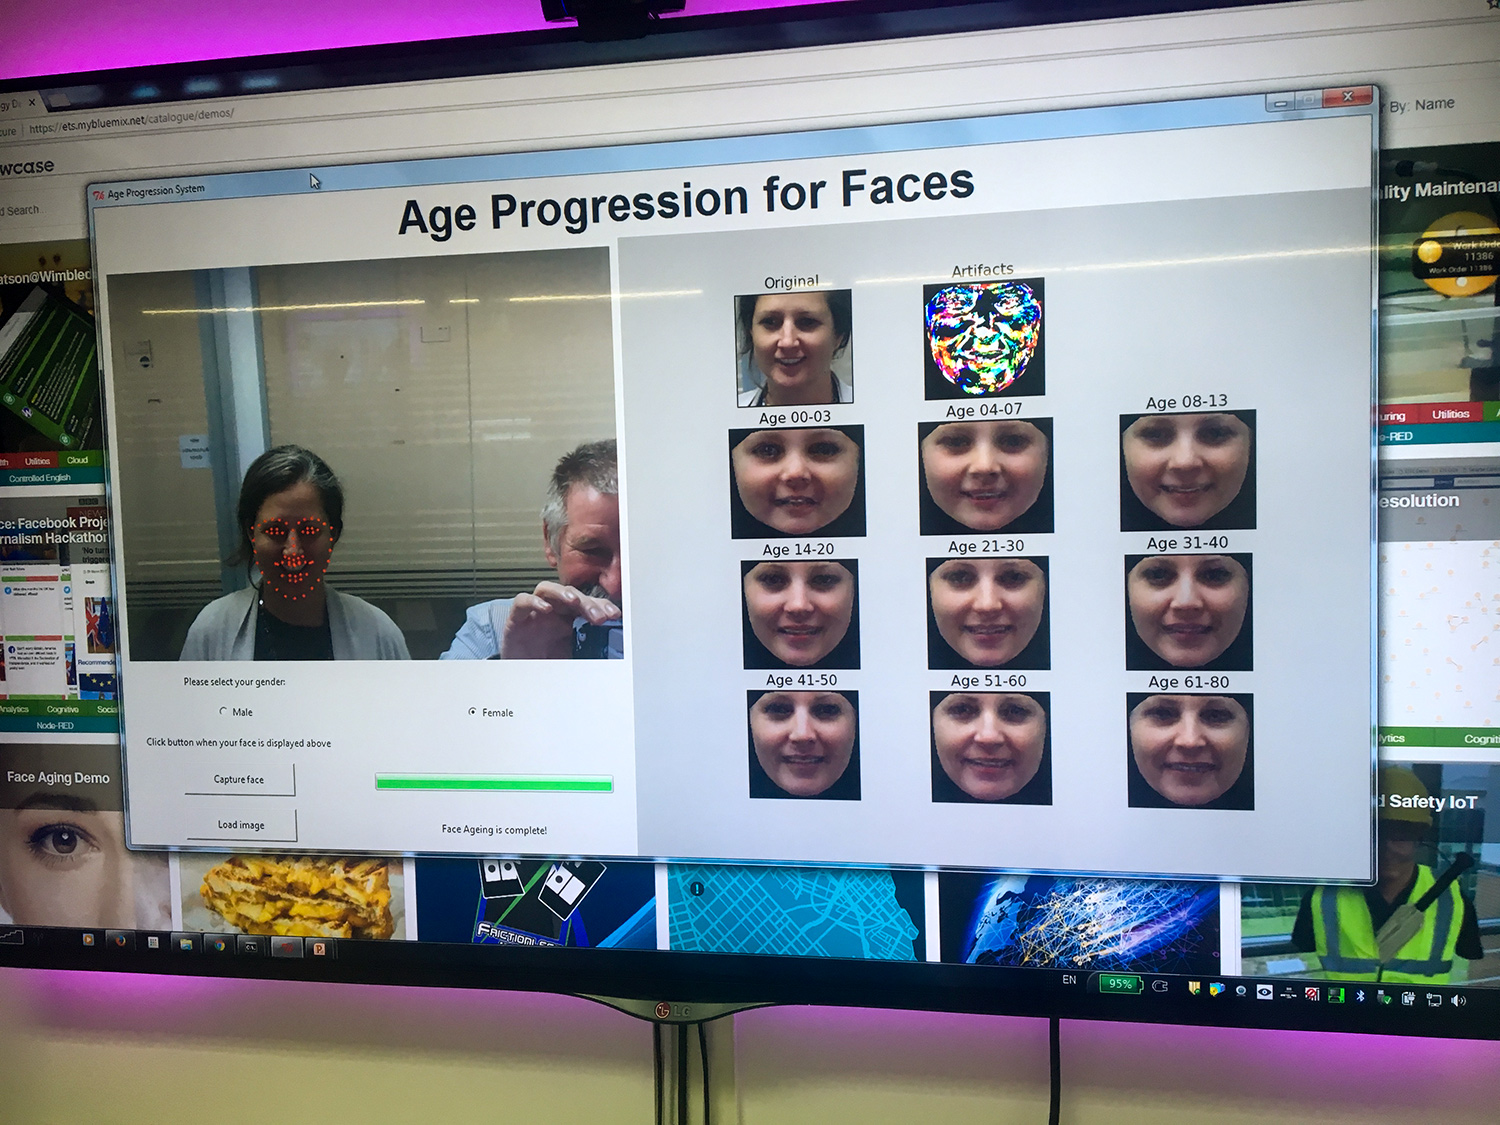 Picture of a computer screen with age progression program open, displaying Susann Keohanes picture and pictoral artifacts and program simulation of her appearance in all of age ranges from 0-3, 4-7, 8-13, 14-20, 21-30, 31-40, 41-50, 51-60, & 61-80.